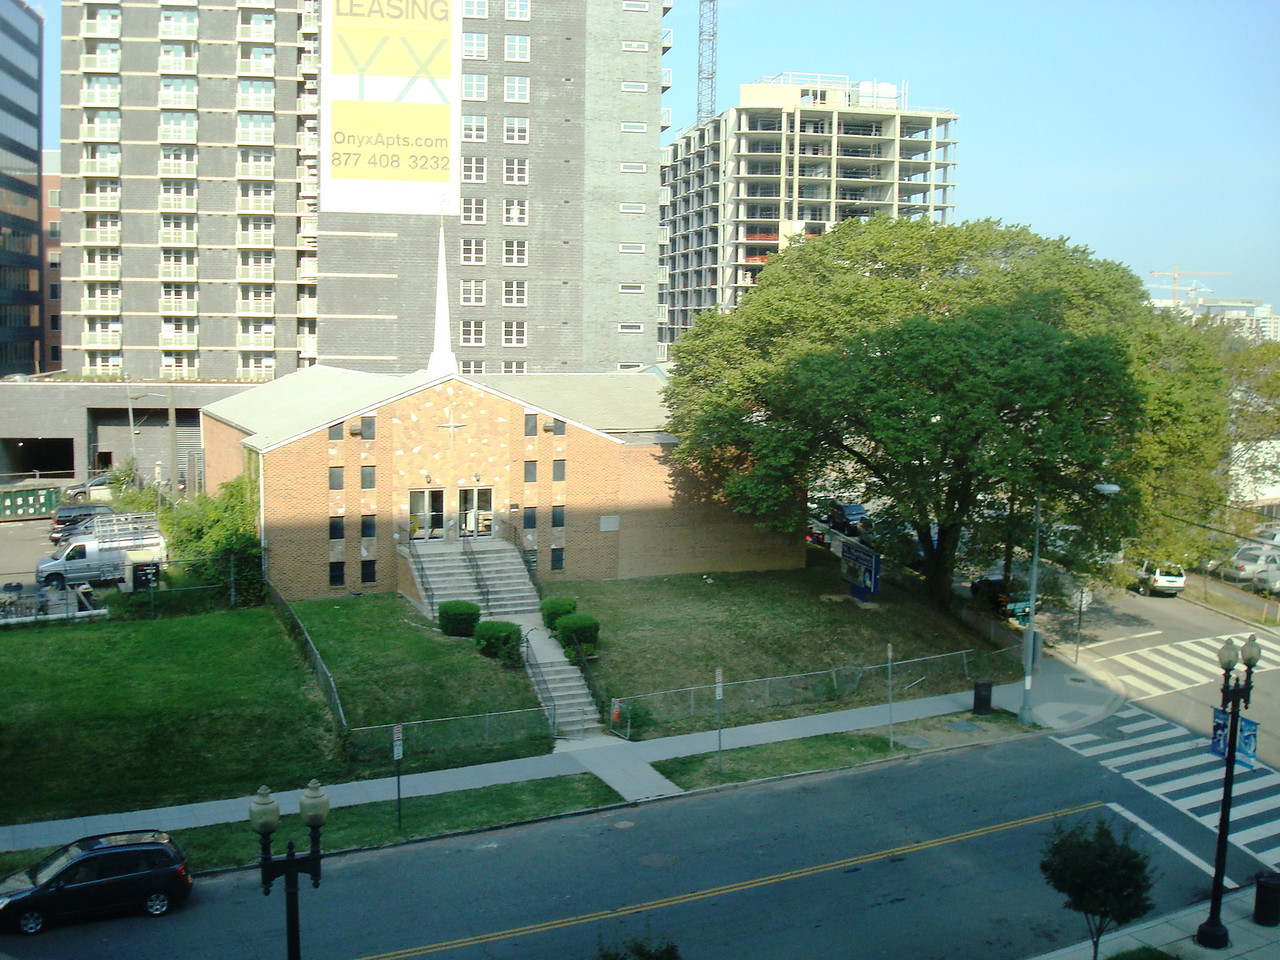 The view from my office window. A Baptist church.